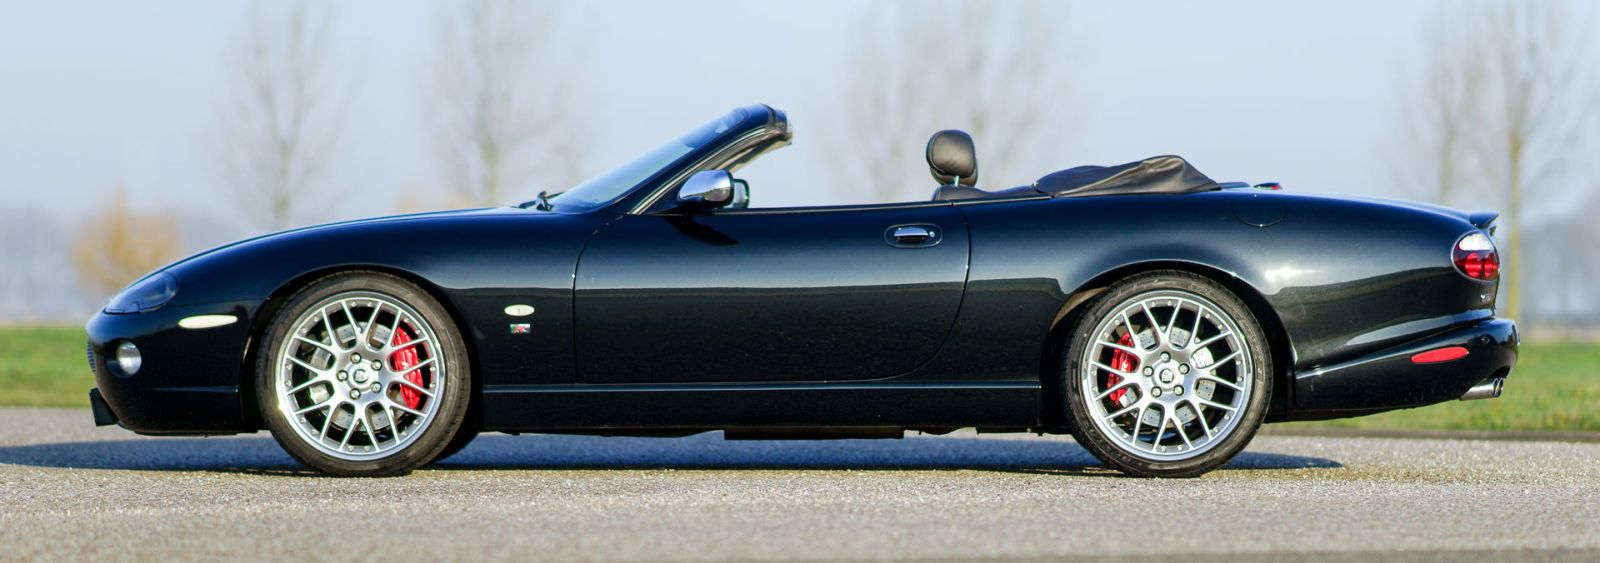 Jaguar XKR 4.2 S Convertible, 2005